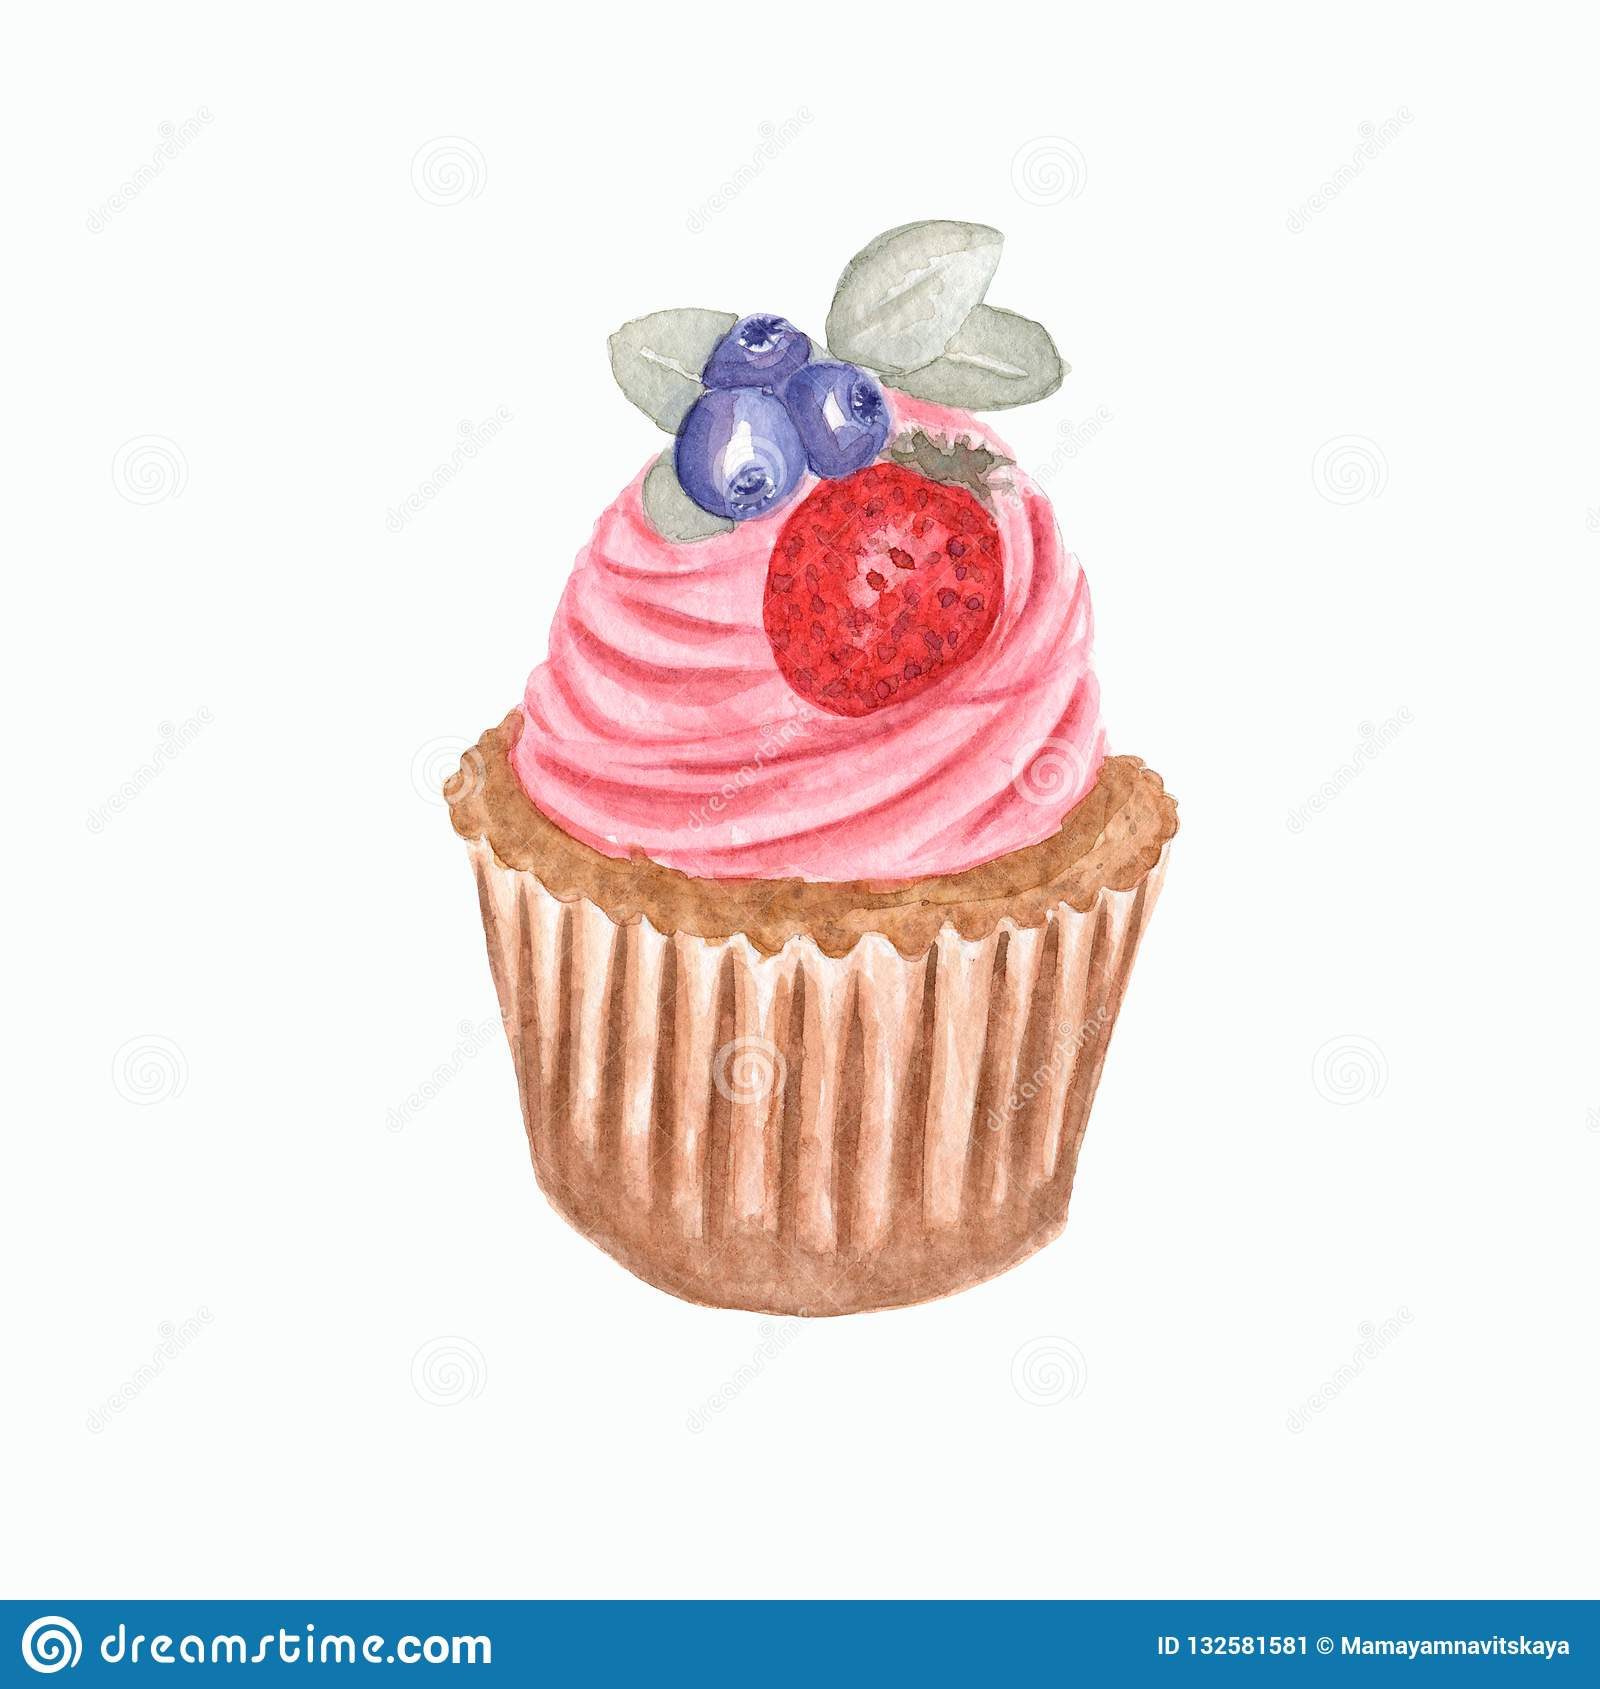 Hand watercolor cup cake, Watercolor drawing, isolated on white